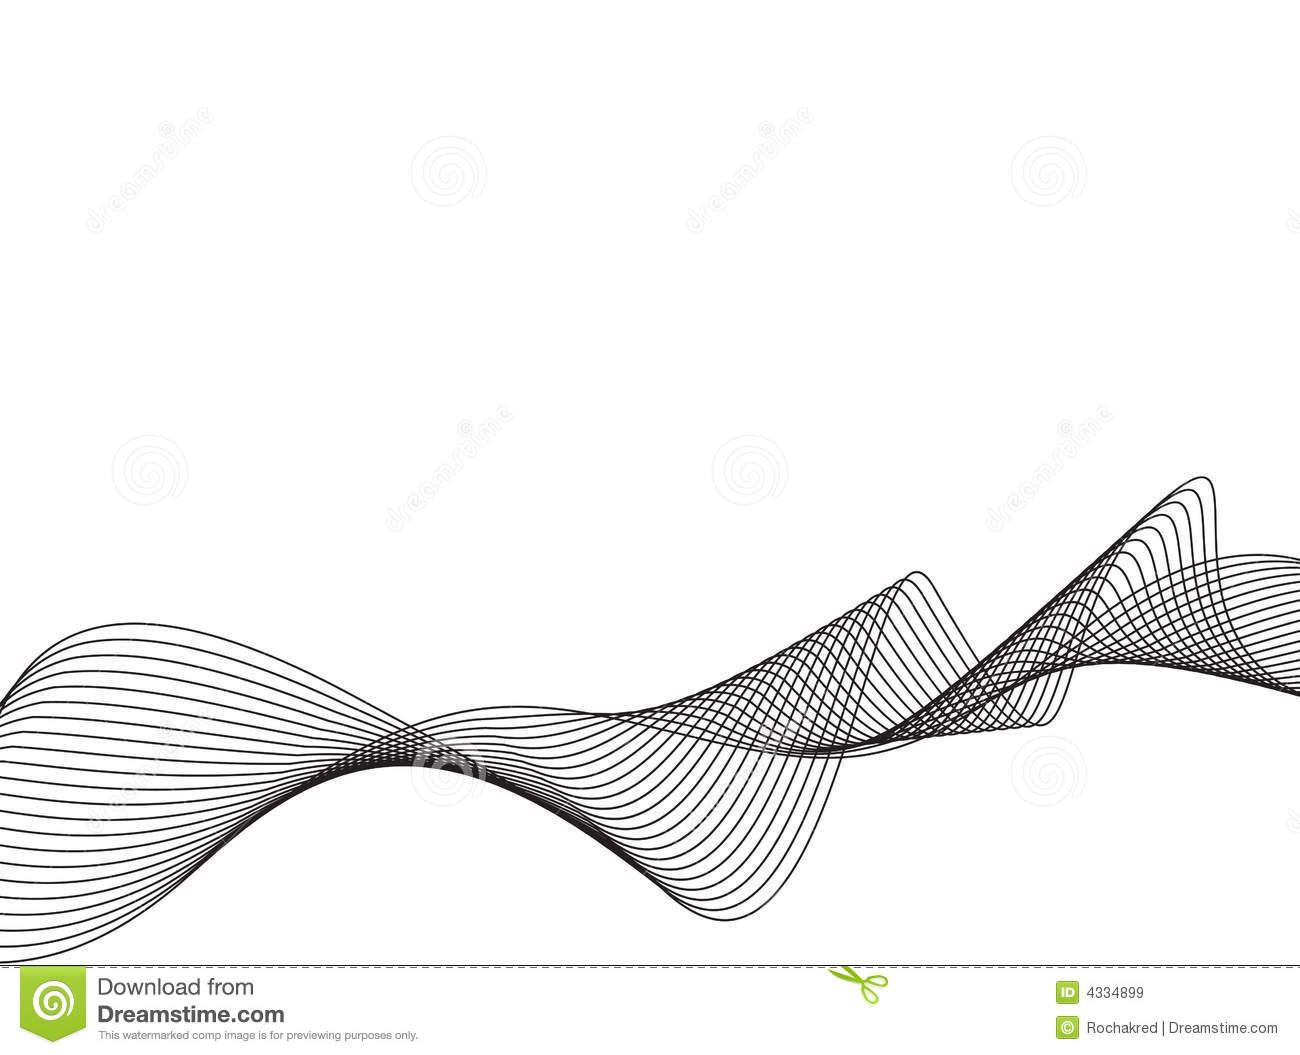 Drawing Vector Lines In Photo : Vector line art waves g s